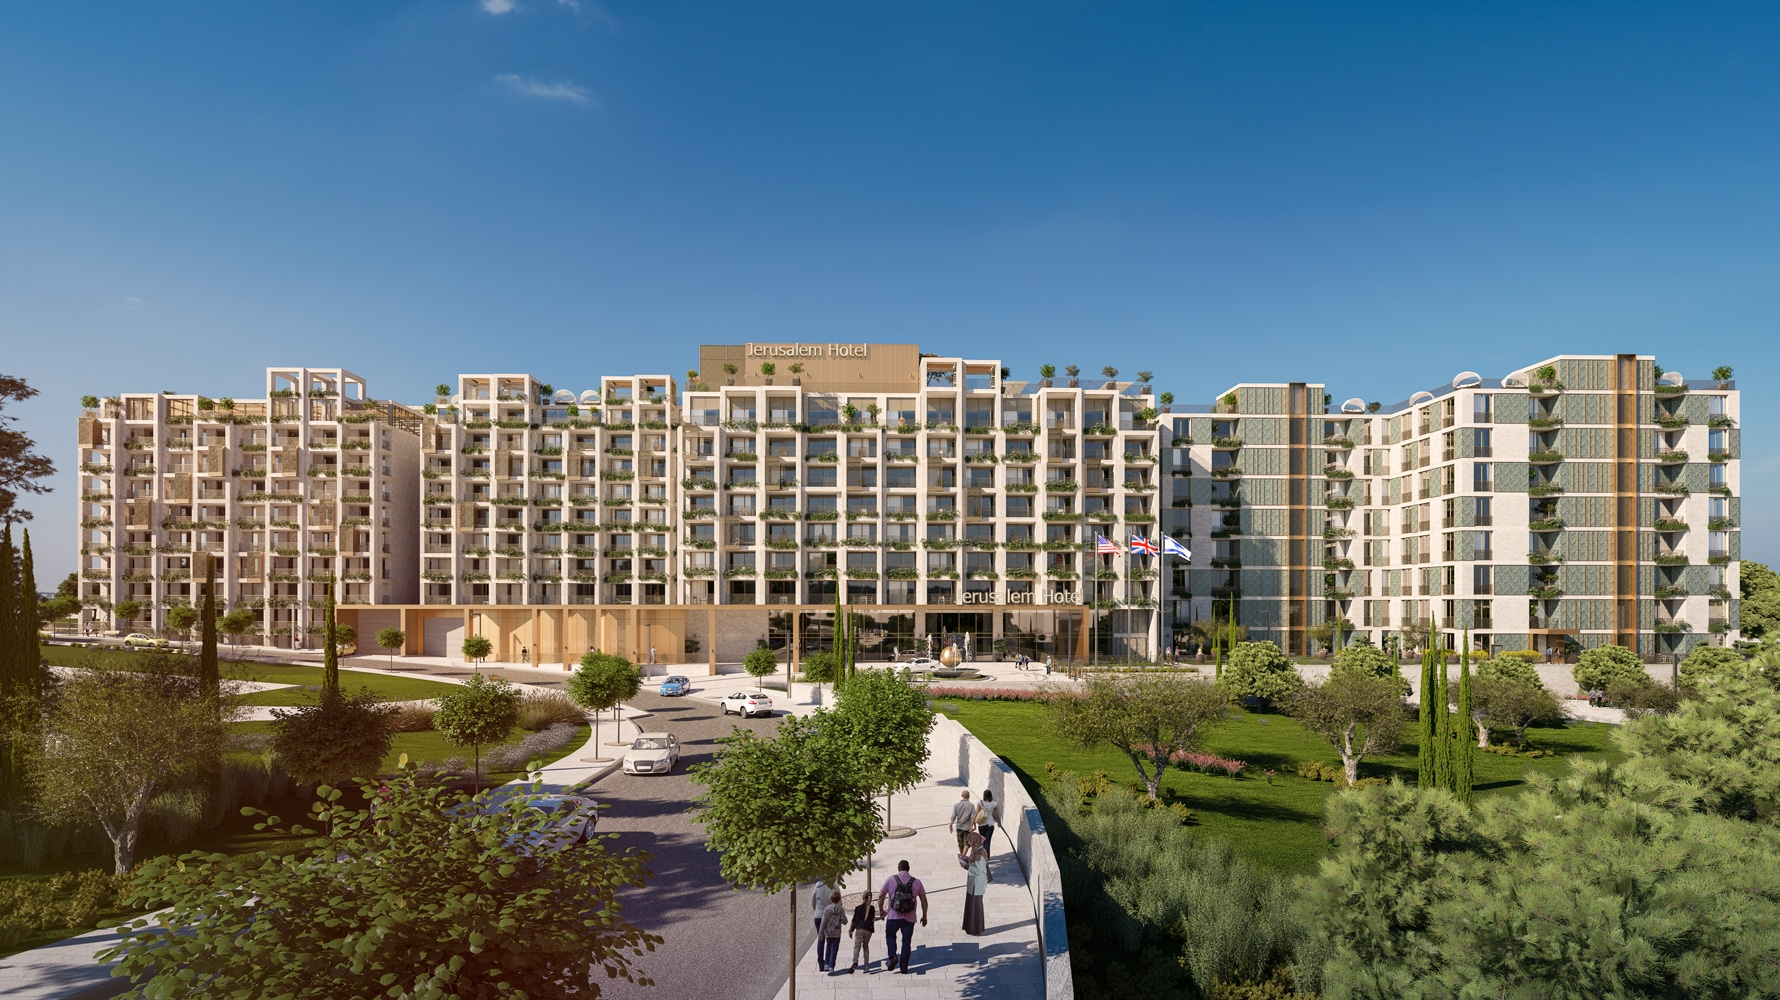 PROMENADE HOTEL AND RESIDENTIAL JERUSALEM